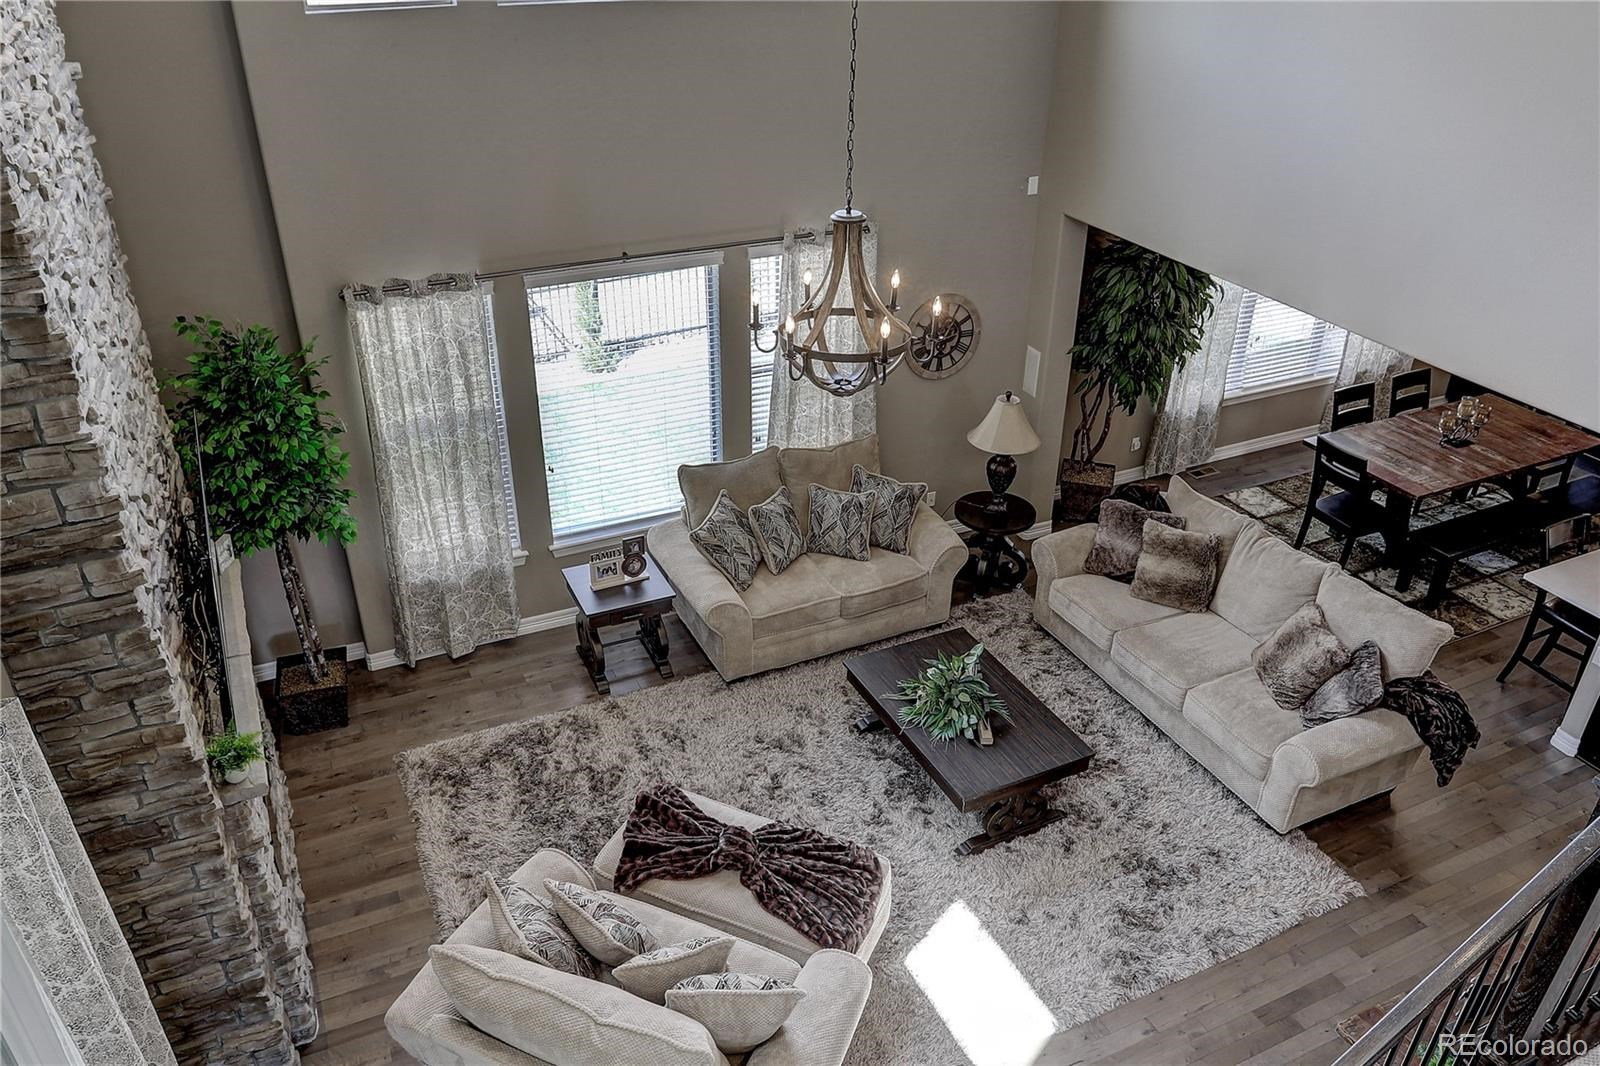 MLS# 8360577 - 20 - 2247 S Isabell Court, Lakewood, CO 80228